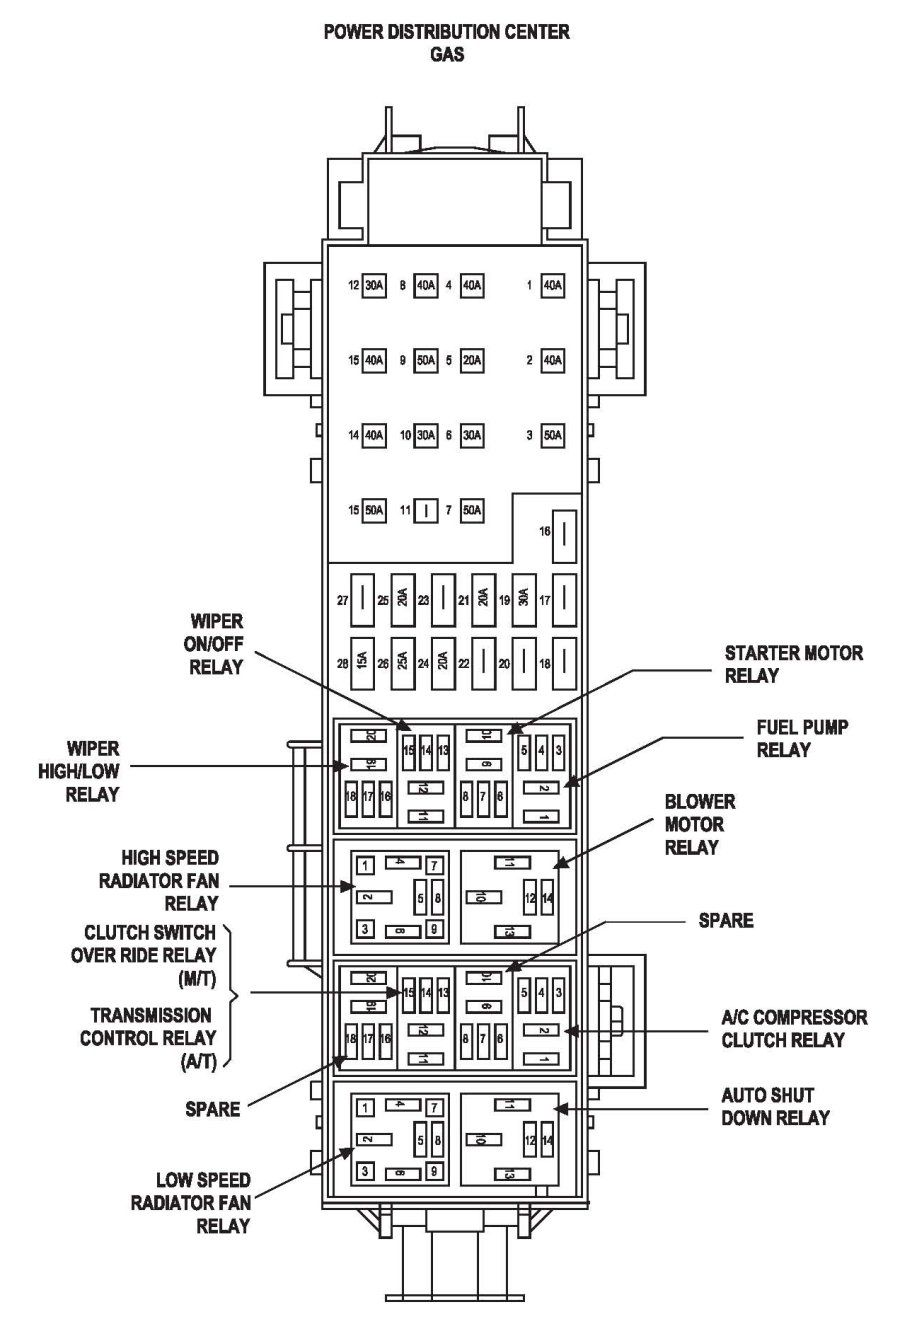 jeep liberty fuse box diagram image details jeep liberty fuse box diagram 2002 f450 fuse box diagram [ 900 x 1336 Pixel ]